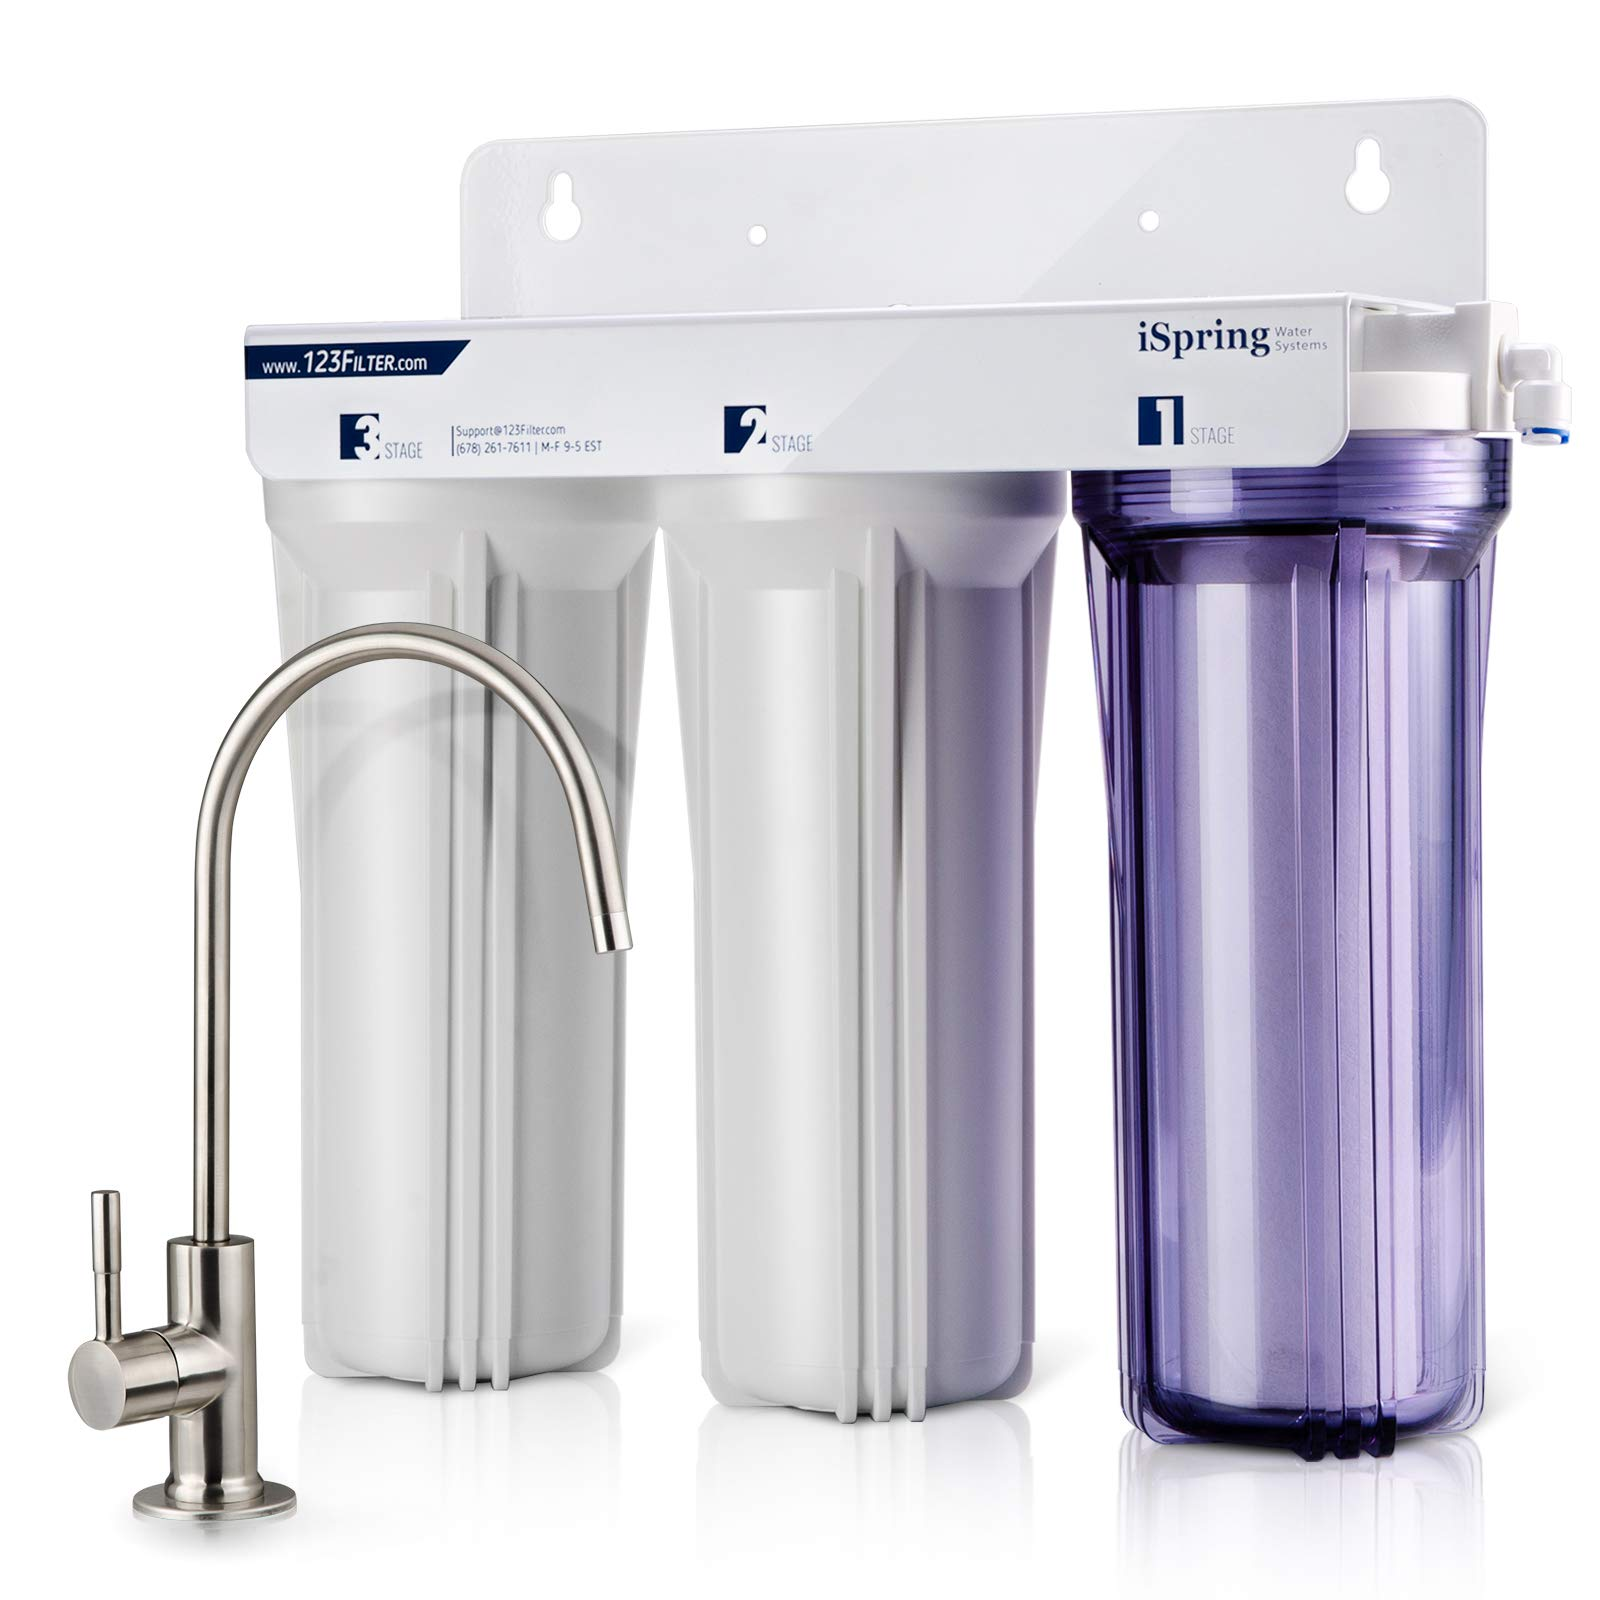 iSpring US31 3-Stage Under Sink High Capacity Tankless Drinking Water Filtration System-Includes Sediment 2X CTO Carbon Block Filters (Newest Version) by iSpring